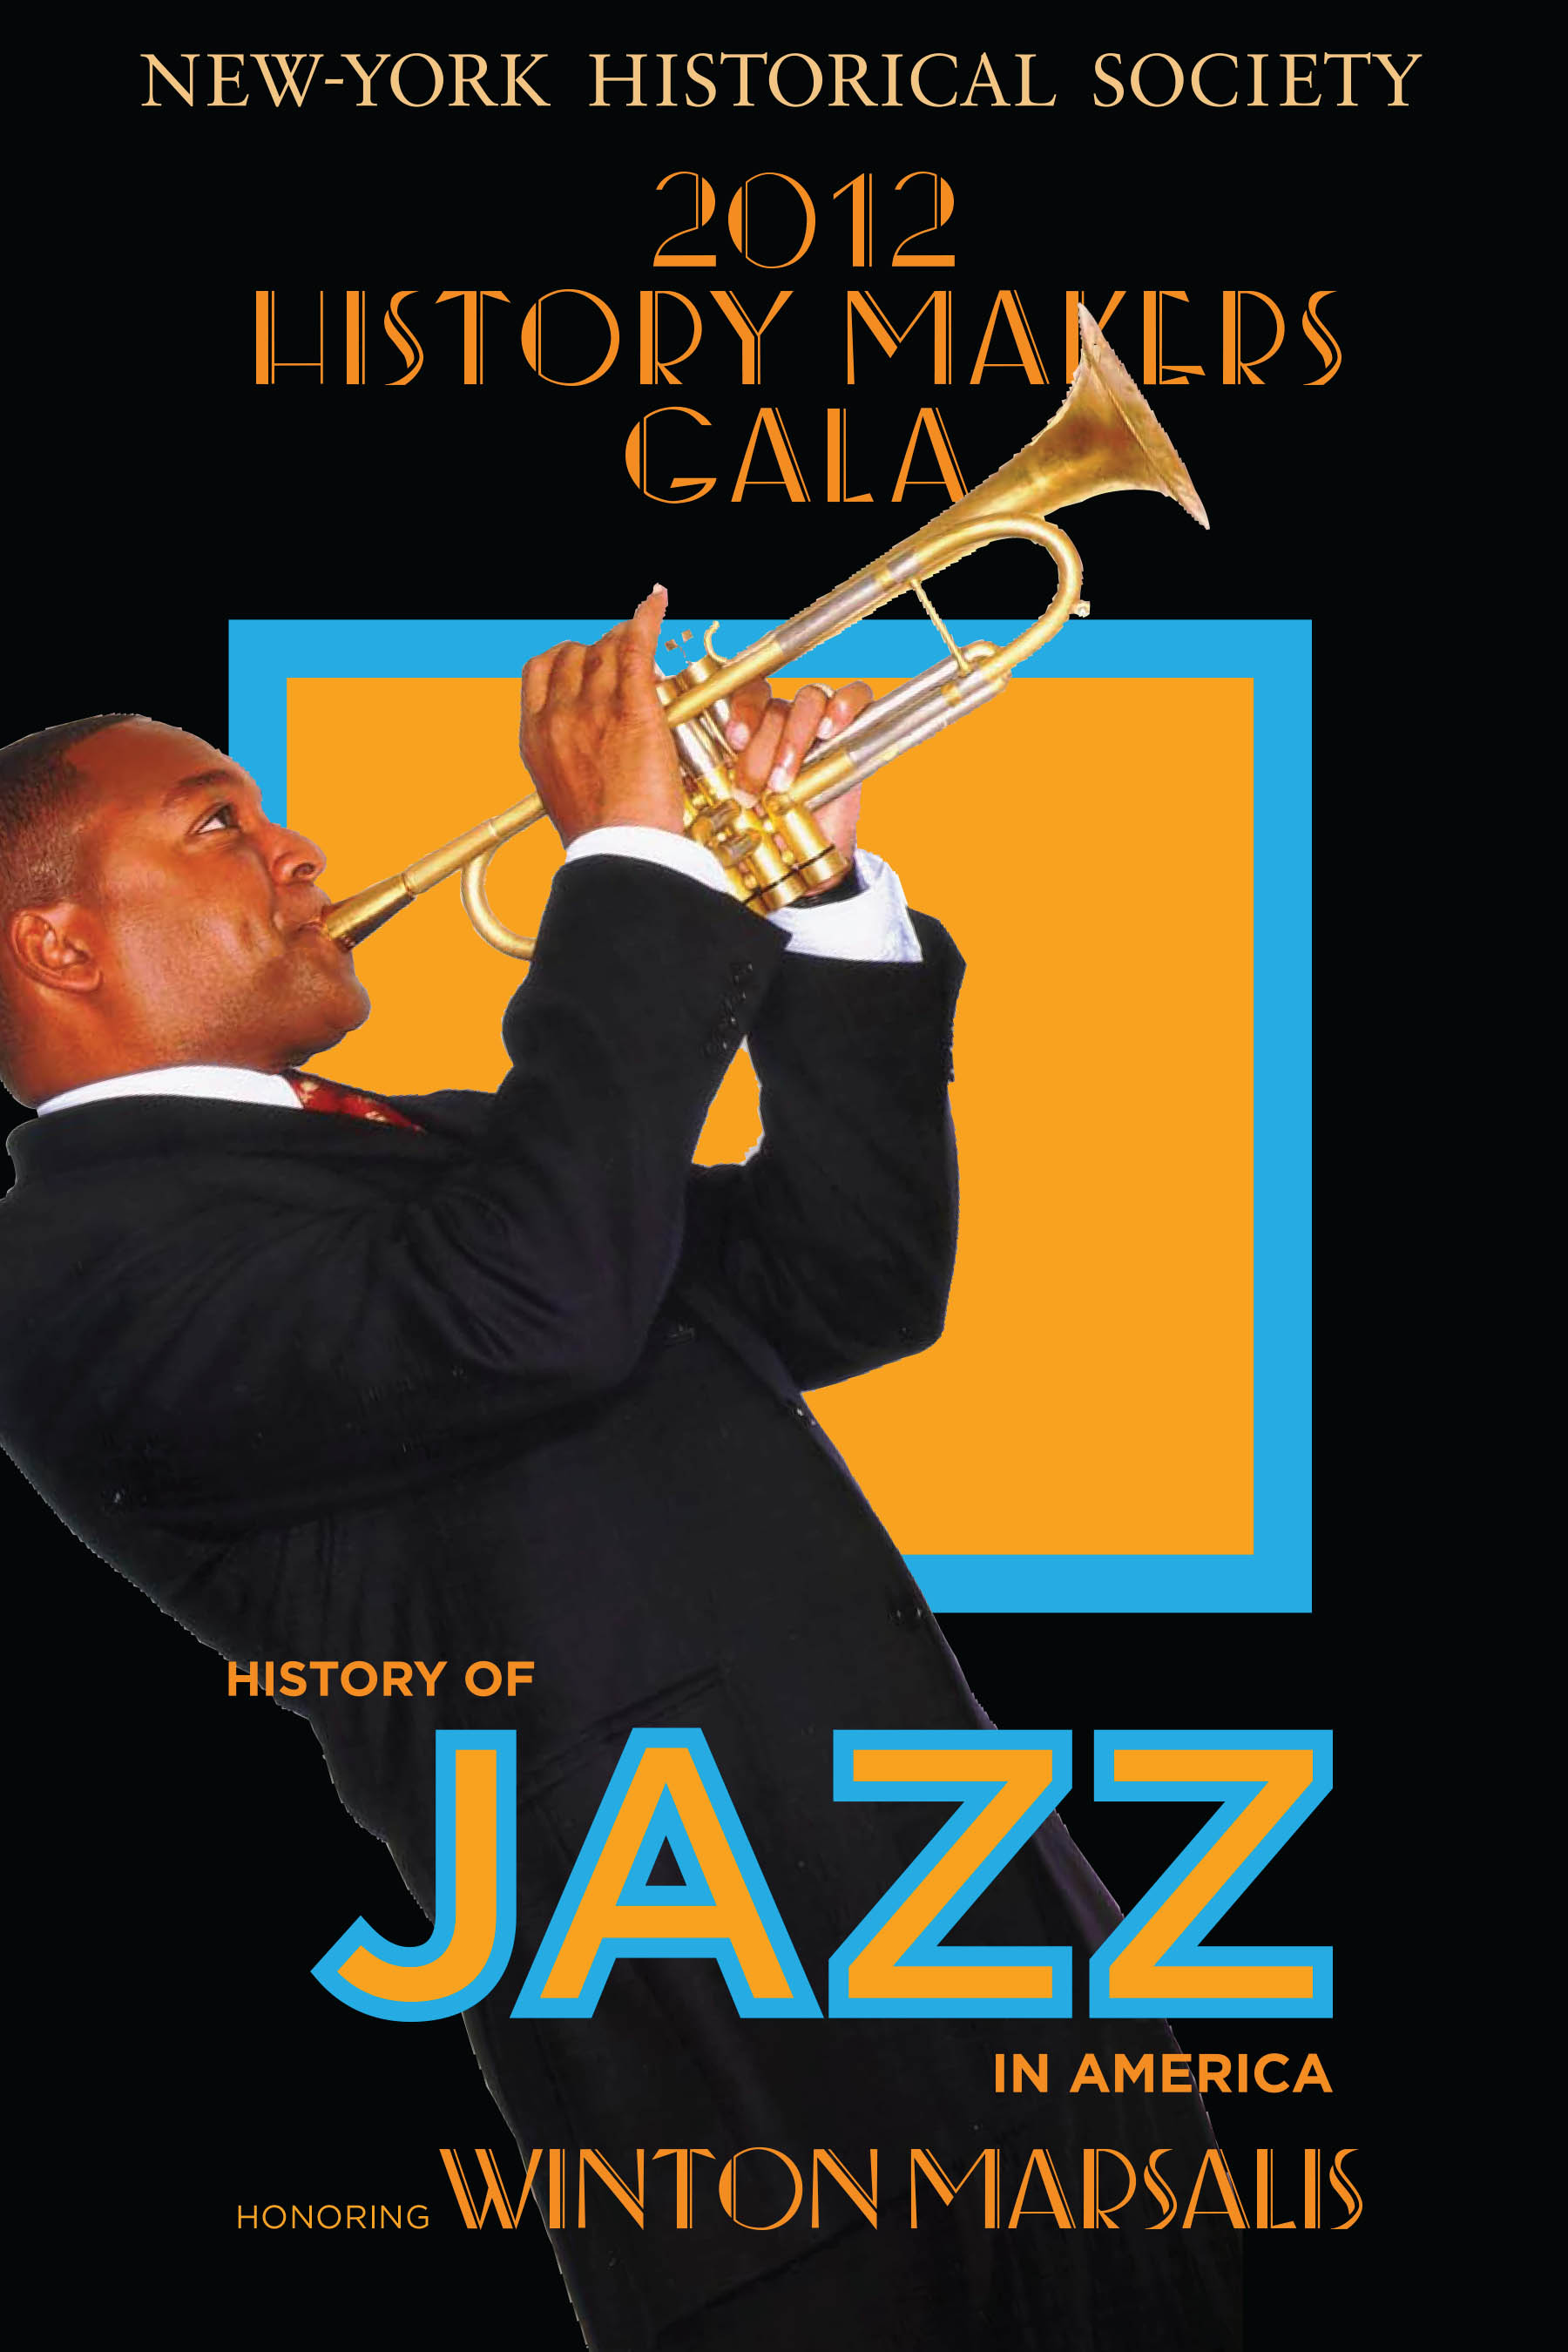 NYHS JAZZ poster